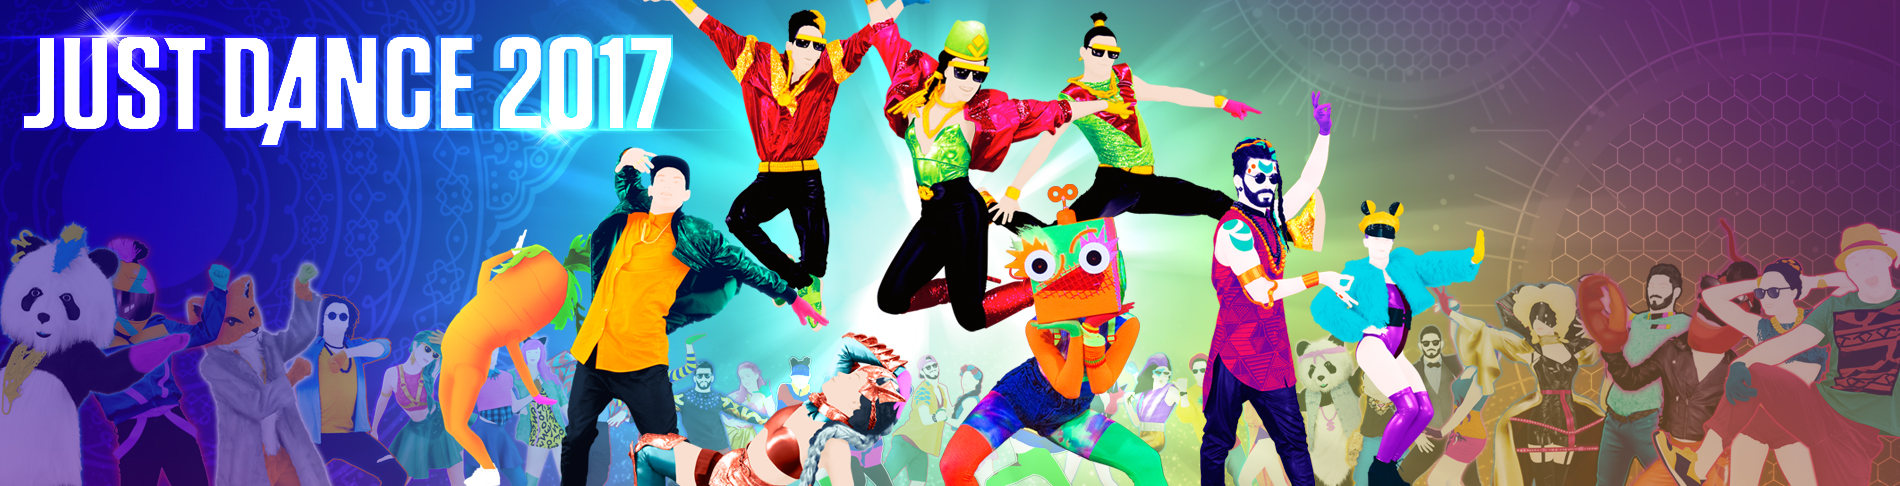 Just dance 2015 board in monopoly plus is now available for 123 get on the dance floor song download